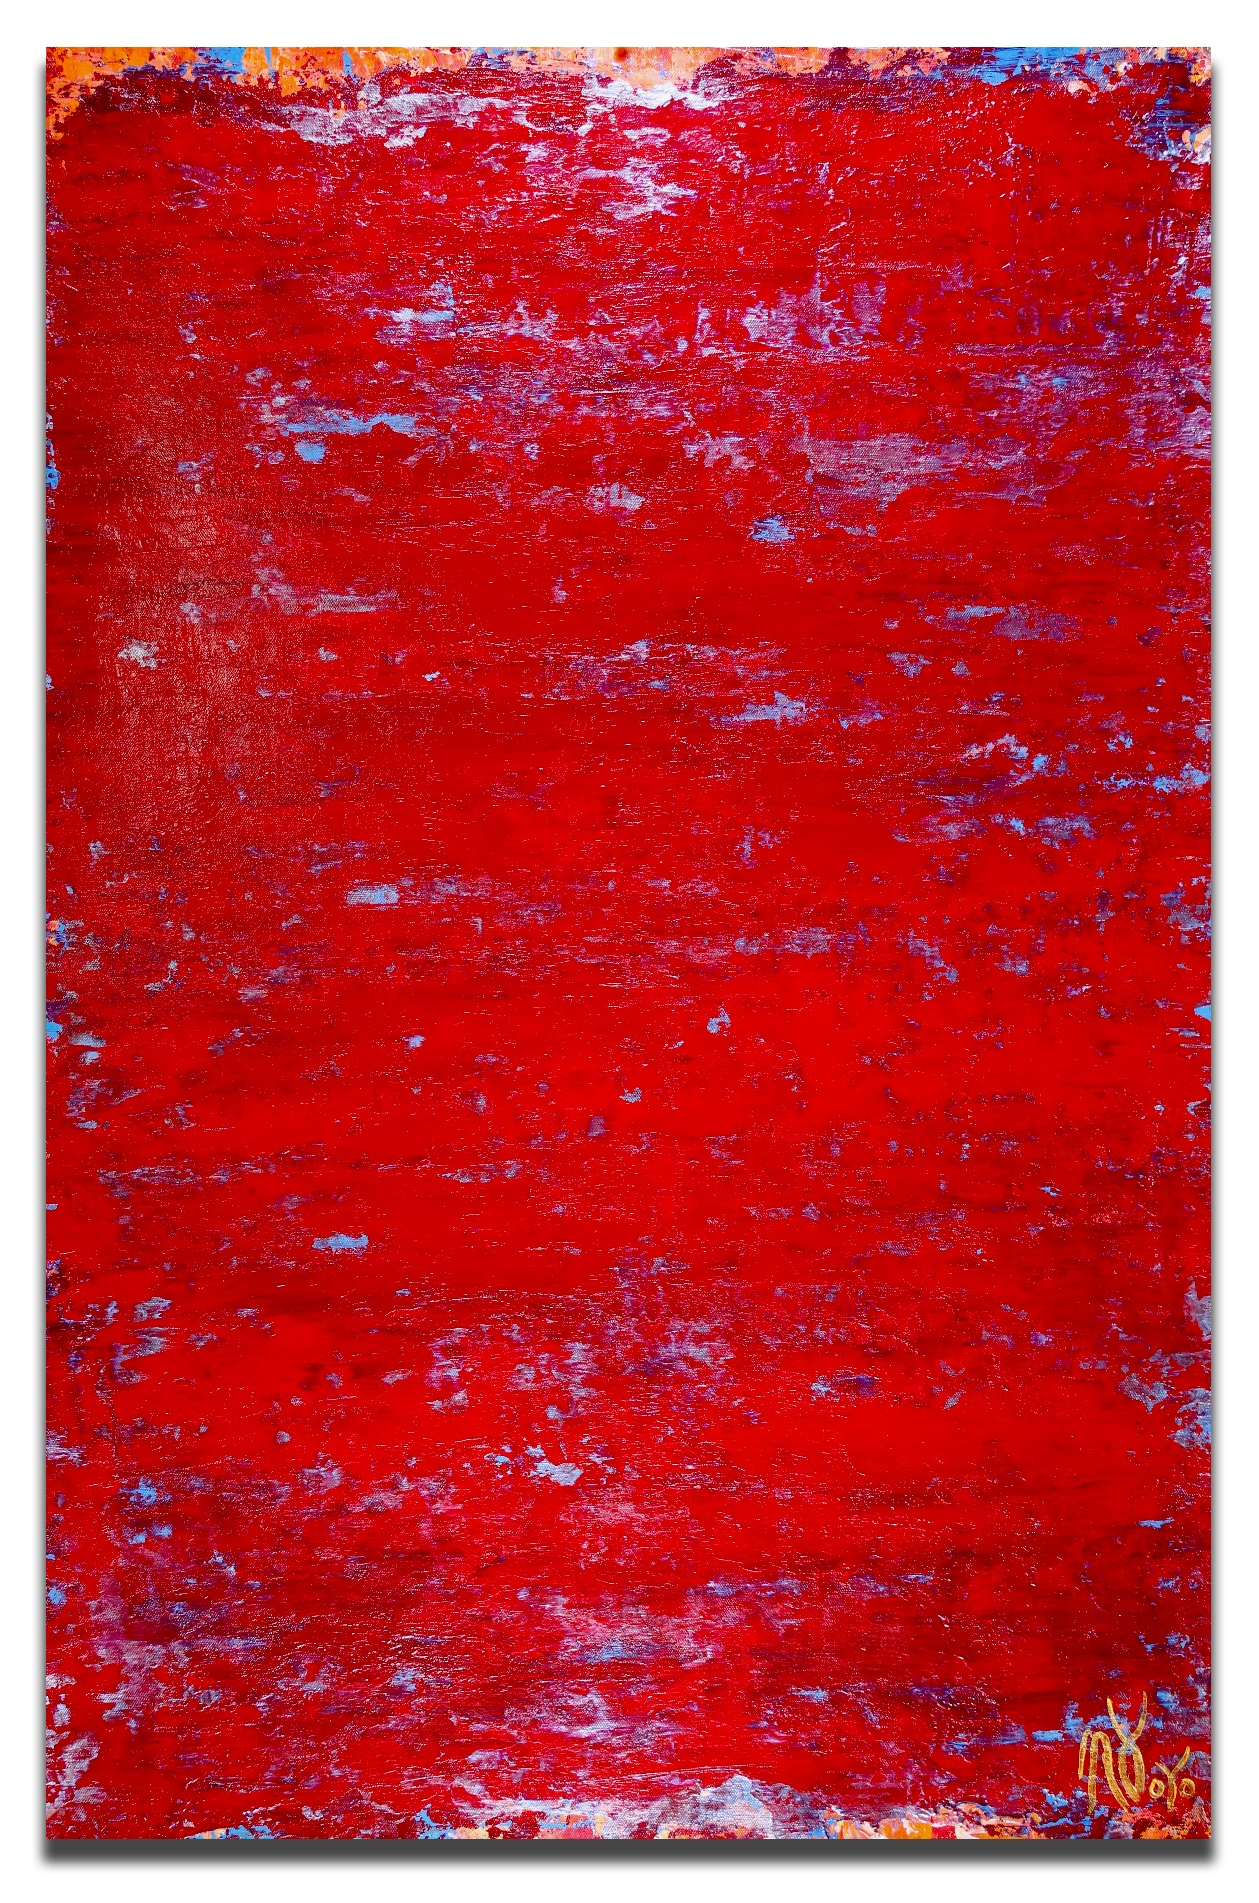 Petrified Red (2018) Abstract Acrylic painting by Nestor Toro